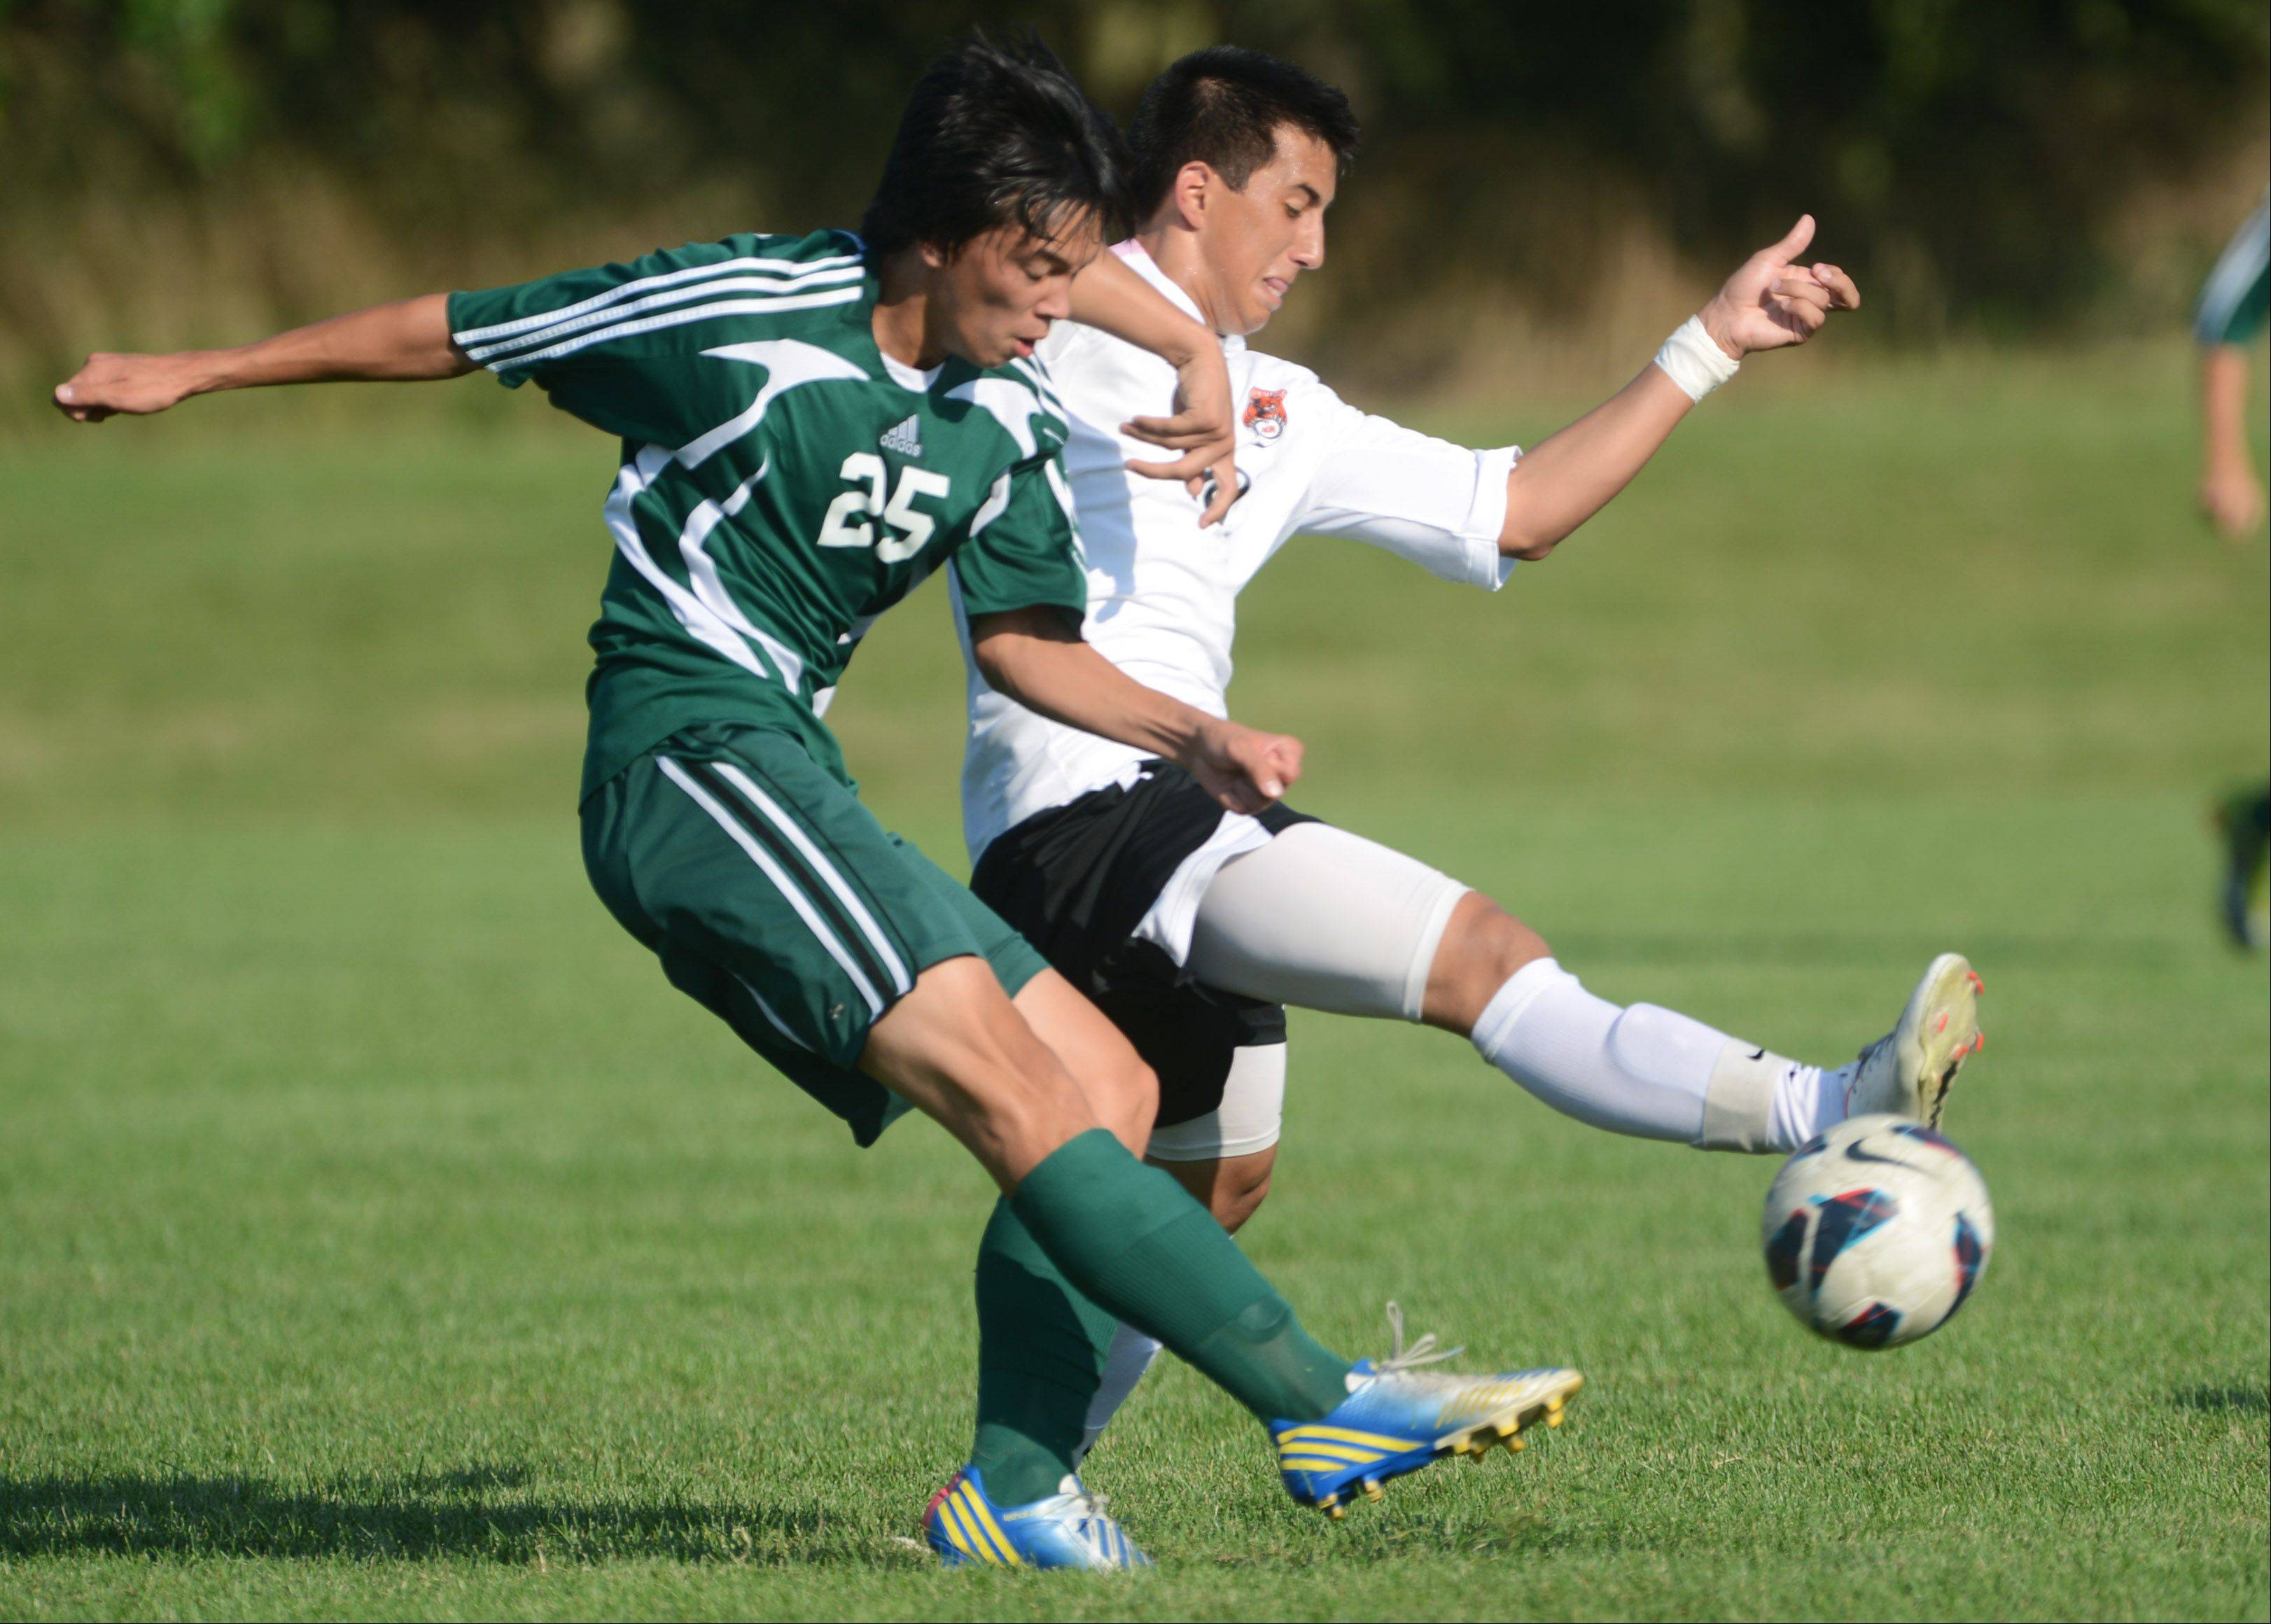 Stevenson's Cobi Illian (25) and Libertyville's Carlos Schultz chase down the ball Tuesday in Libertyville.